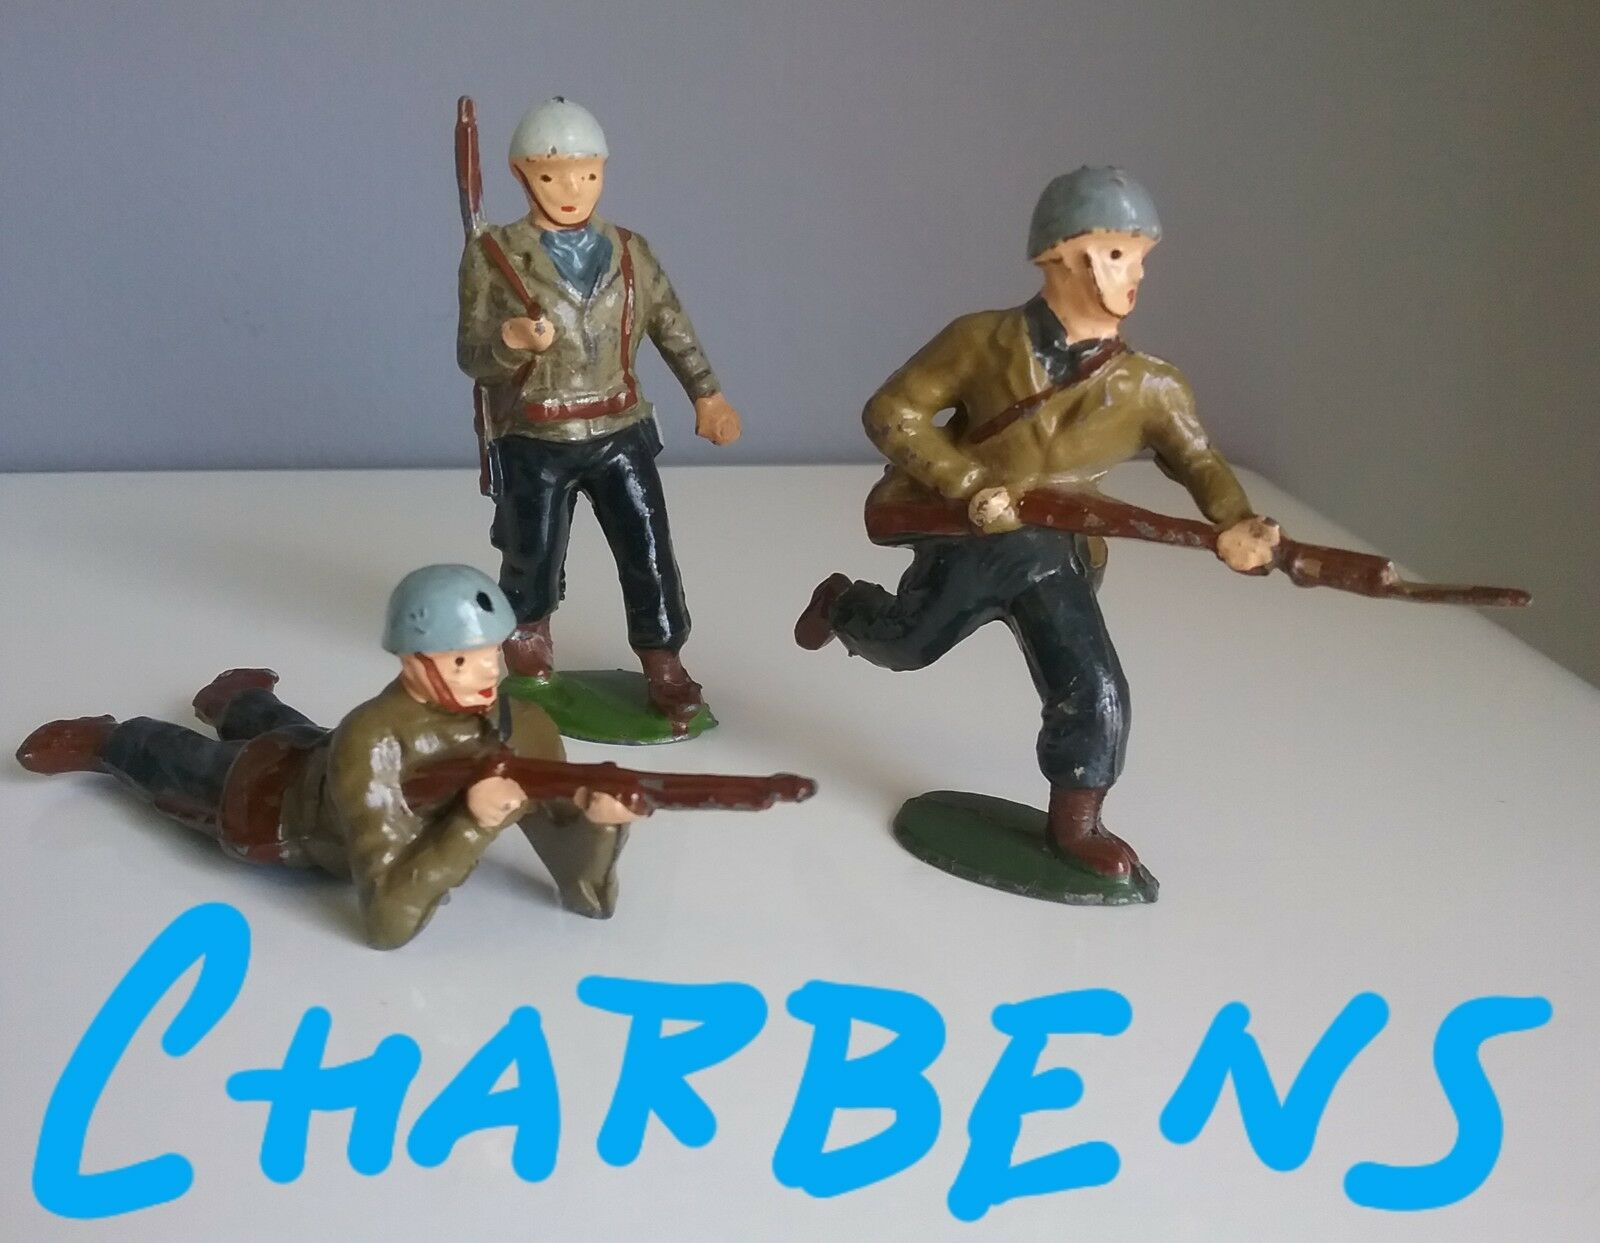 CHARBENS  hollowcast lead toy soldiers - American GI's  1950 made in UK